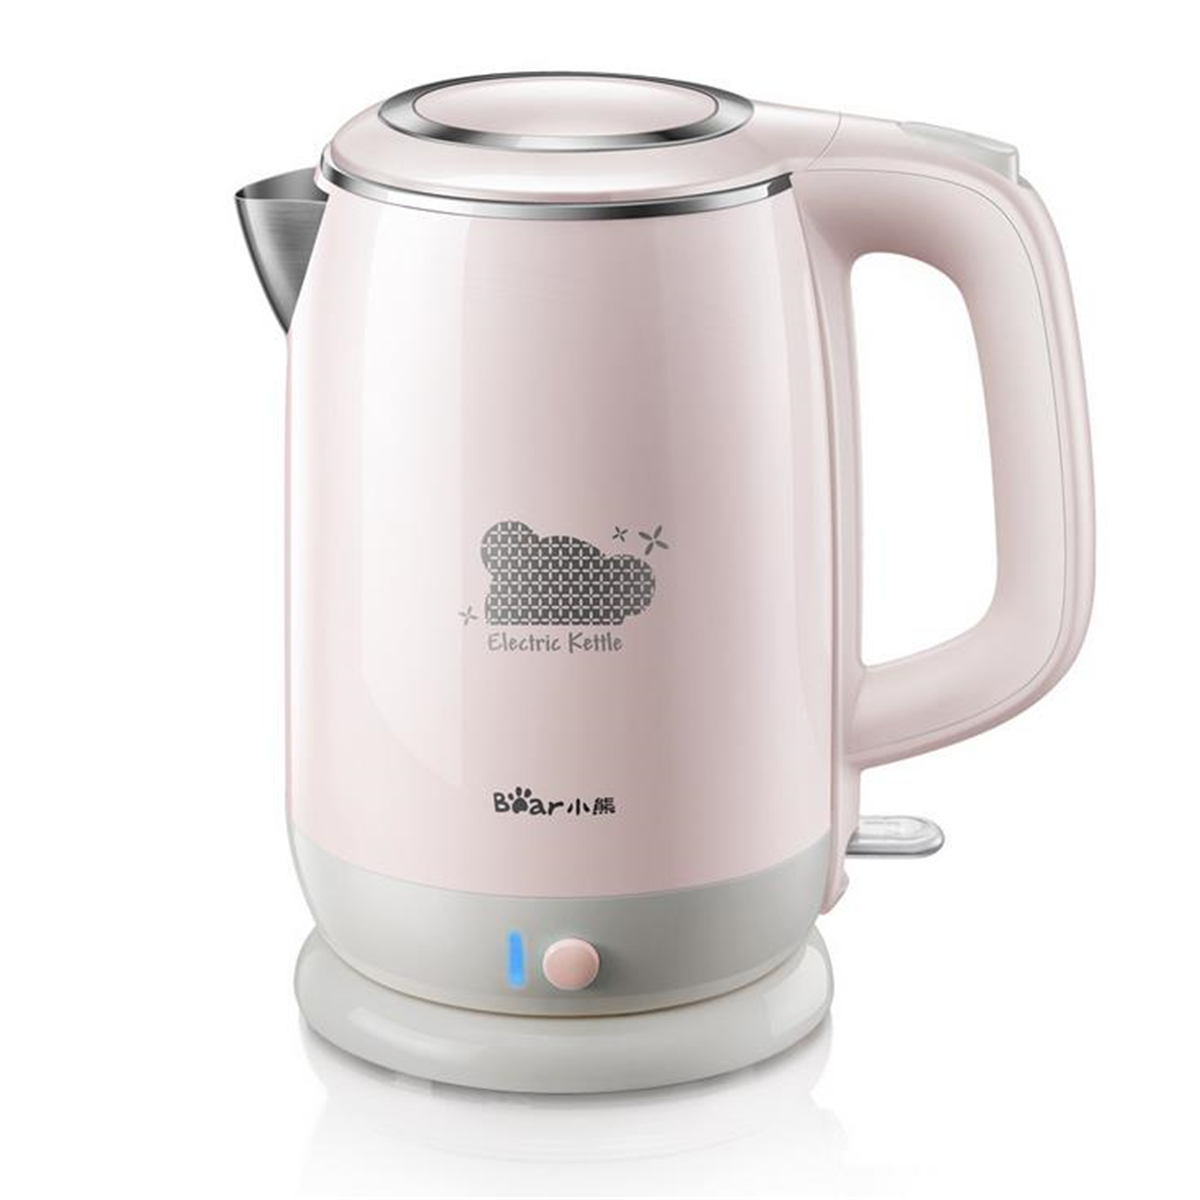 1.5L Water Kettle Handheld Instant Heating Electric Water Kettle Auto Power-off Protection Wired Kettle Three-layer Anti-scald1.5L Water Kettle Handheld Instant Heating Electric Water Kettle Auto Power-off Protection Wired Kettle Three-layer Anti-scald